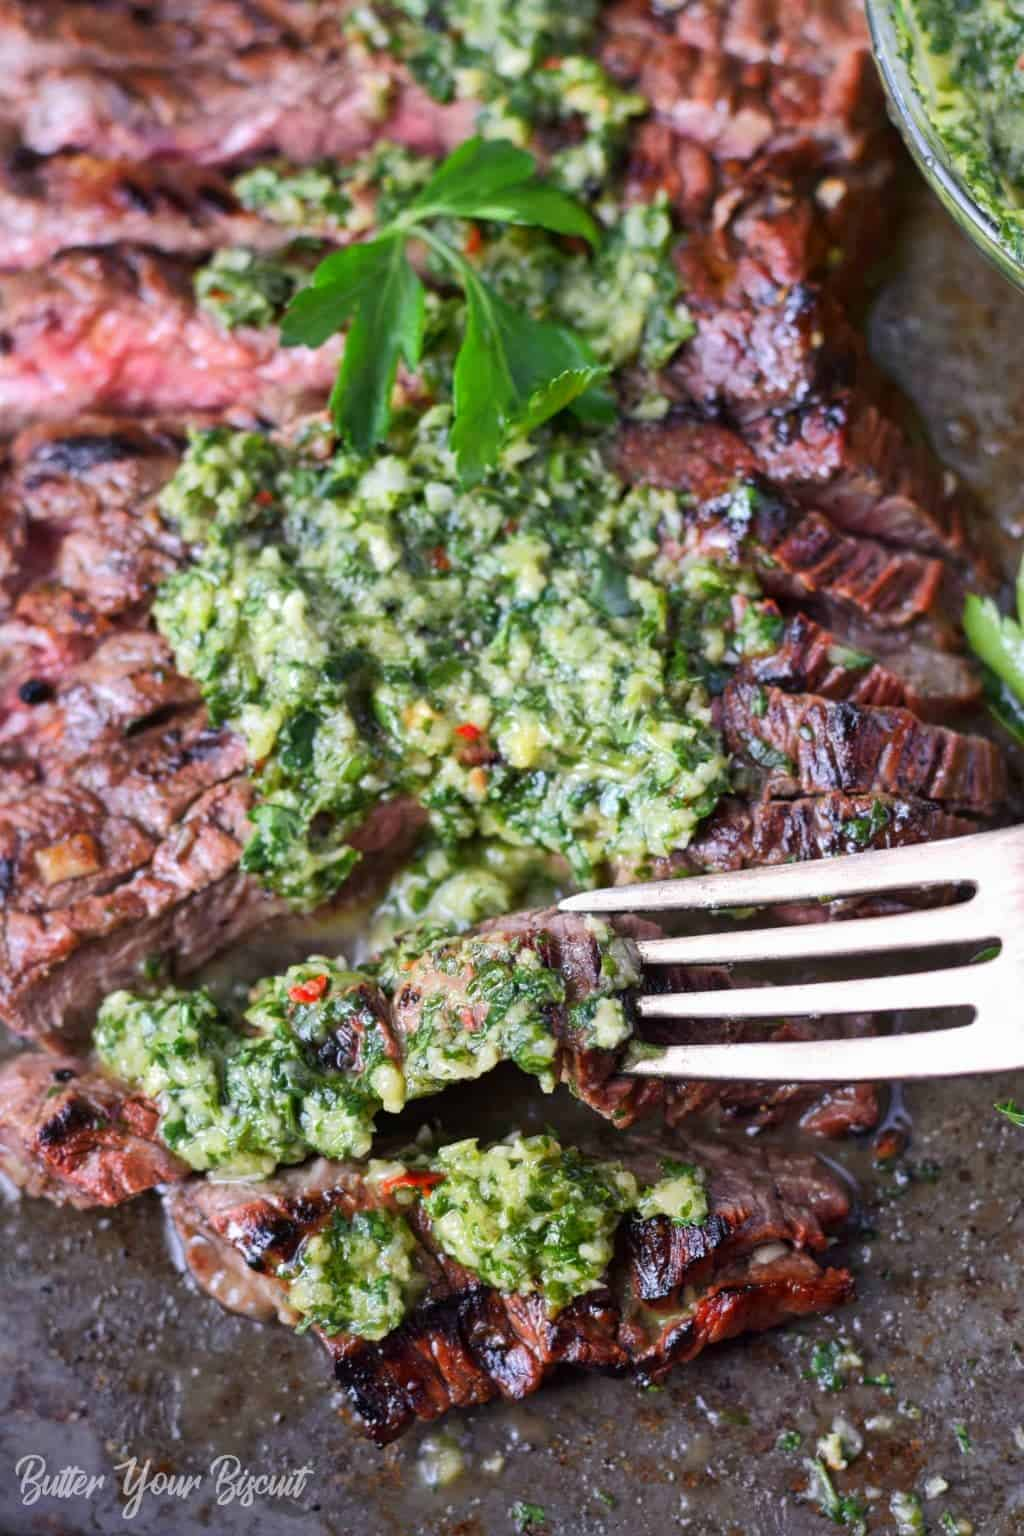 Grilled skirt steak and chimichurri on a baking sheet with a fork